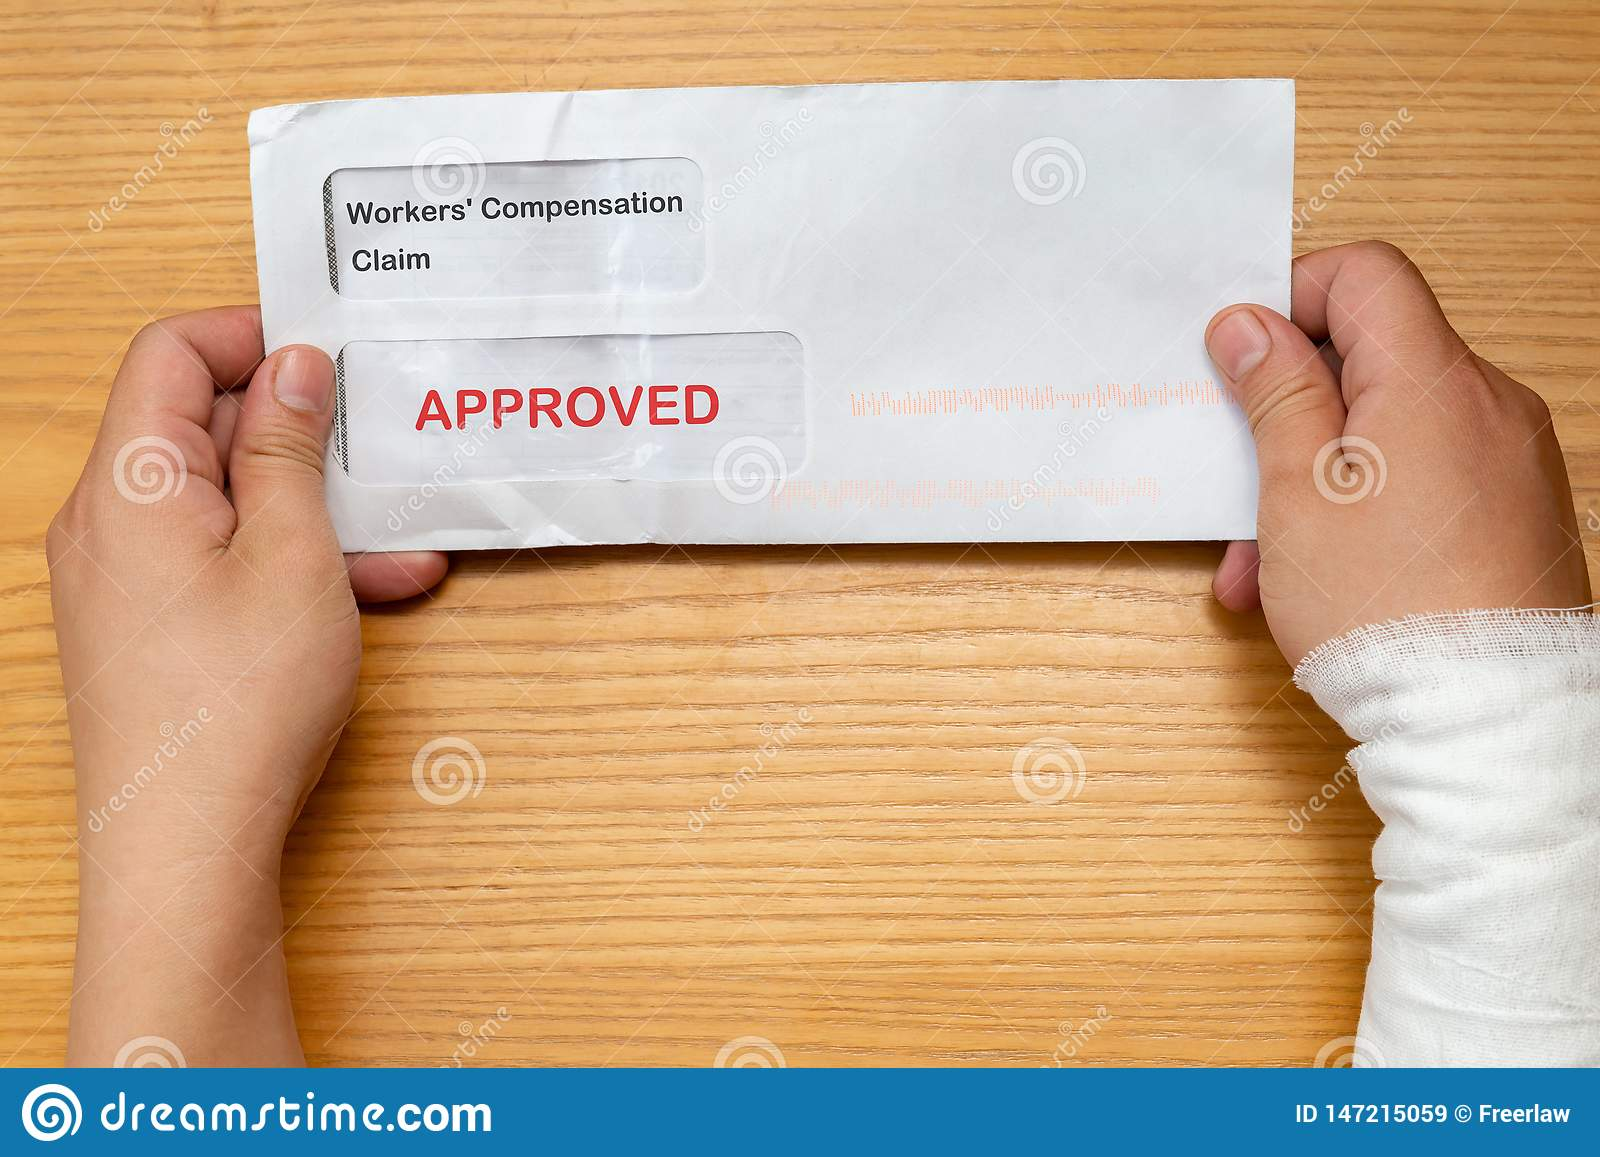 Wrapped hand holding envelope with workers compensation claim and result of approved removeable words with clipping path